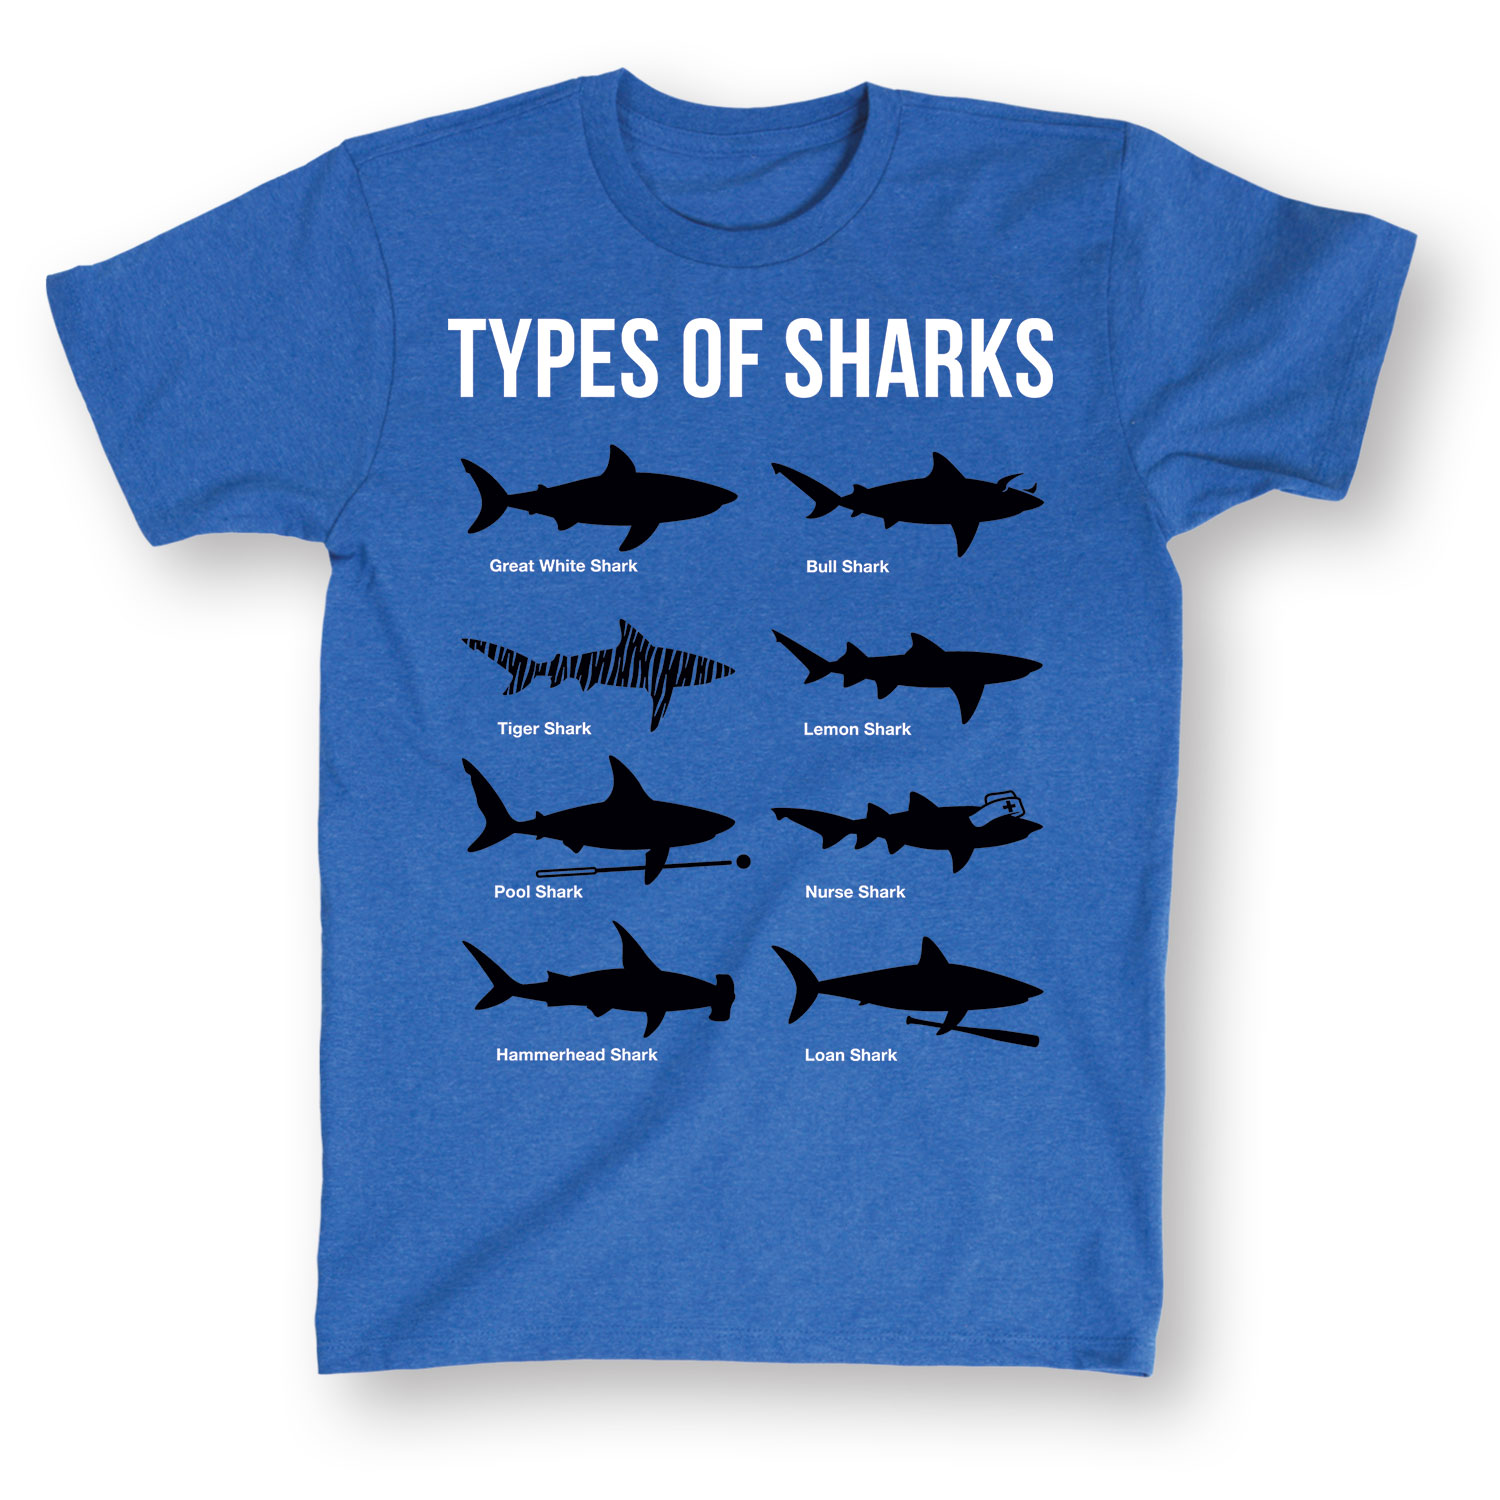 crazy shark lady shark T-Shirt Unlimited options to combine colours, sizes & styles Discover T-Shirts by international designers now! street sharks t-shirts, tiger shark t-shirts, shark week apparel t-shirts, shark attack t-shirts, with shark designs t-shirts, save the sharks t-shirts, funny shark t-shirts, shark fin t-shirts, women shark.